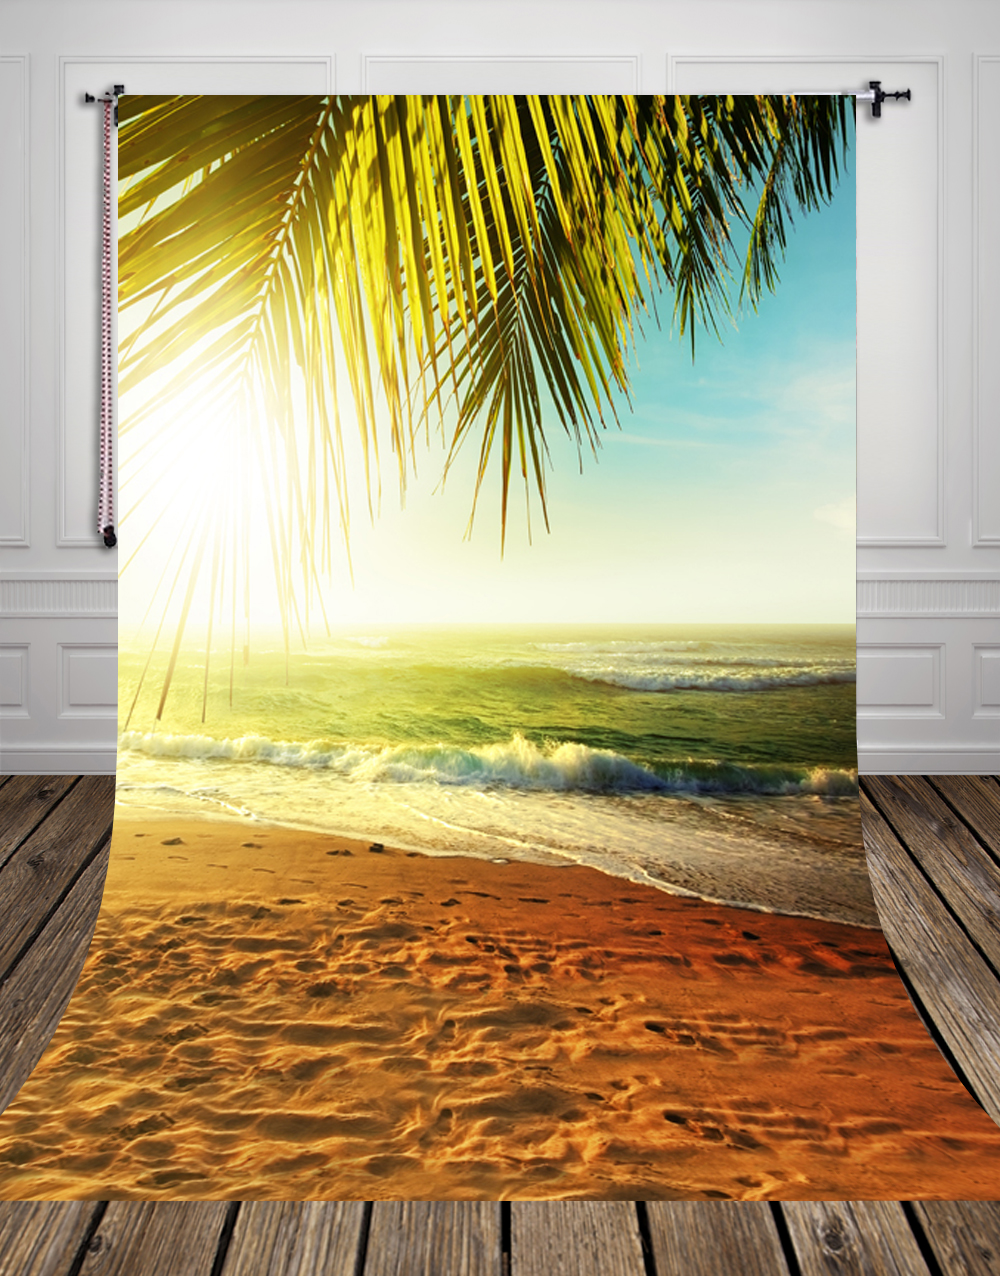 150 220CM Photography Background seaside beach Hawaii Digital Printing Newborn Backdrops For Photo Studio D 9274